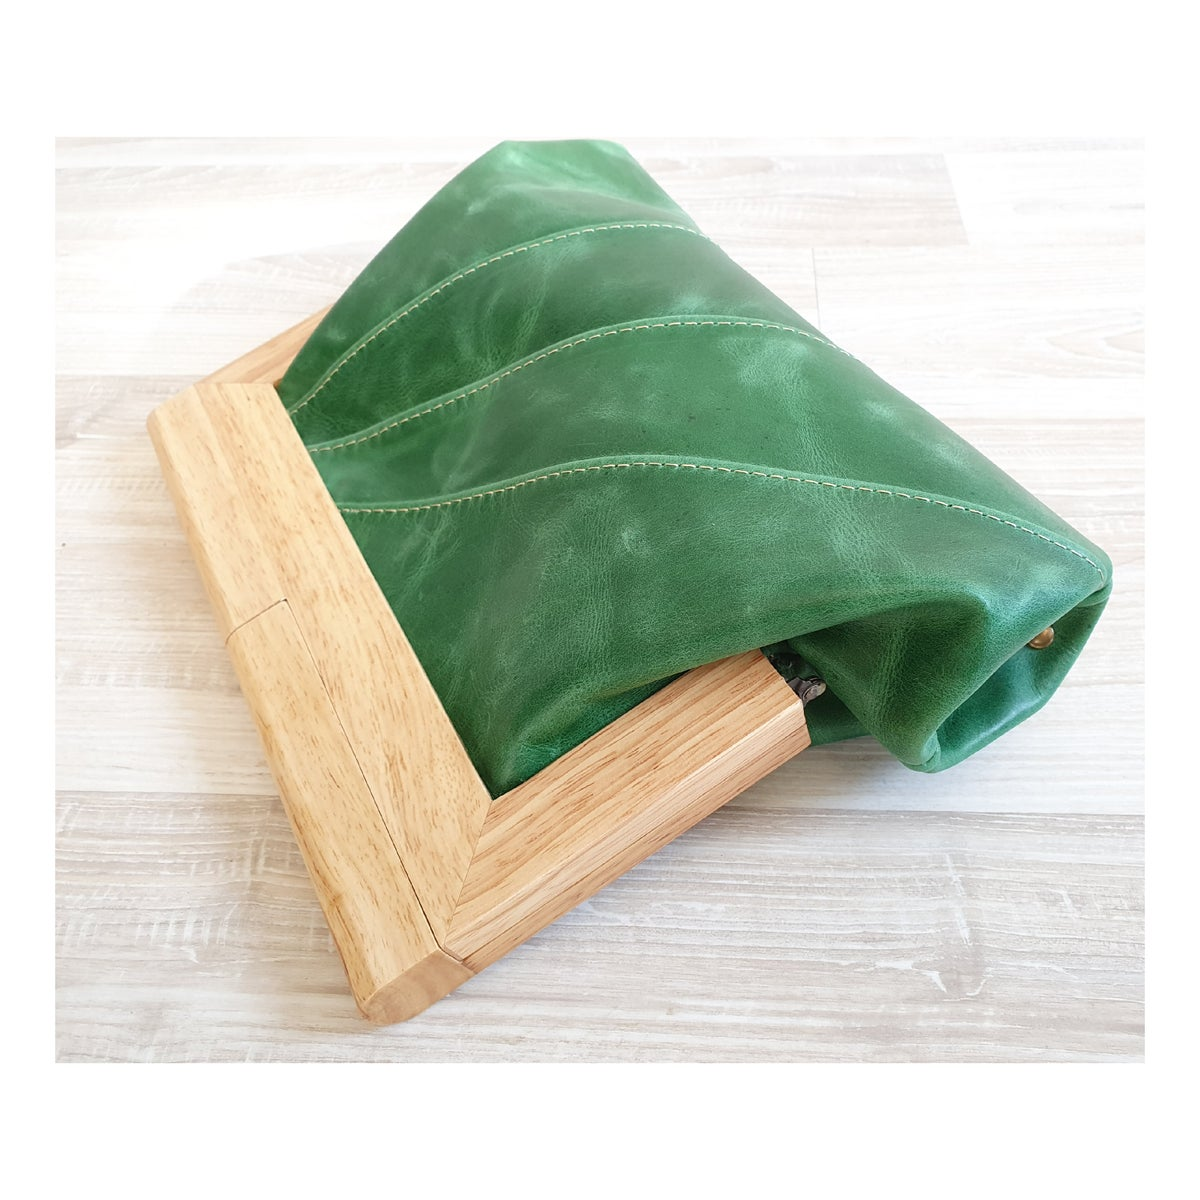 Emerald Green leather & Timber clutch